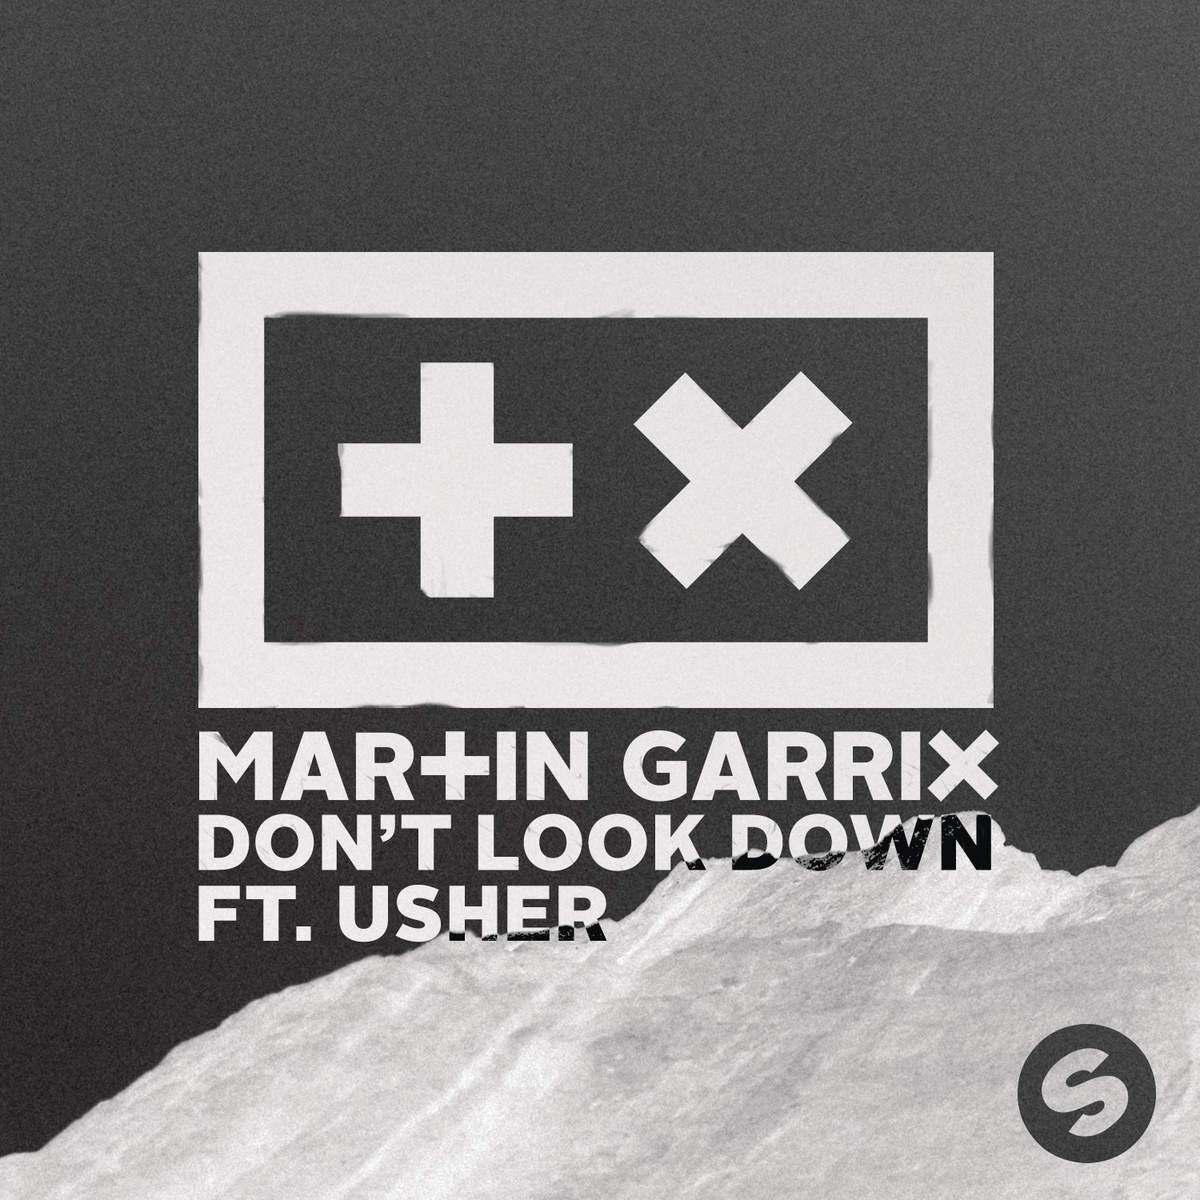 Martin garrix dont look down 2015 1200x1200